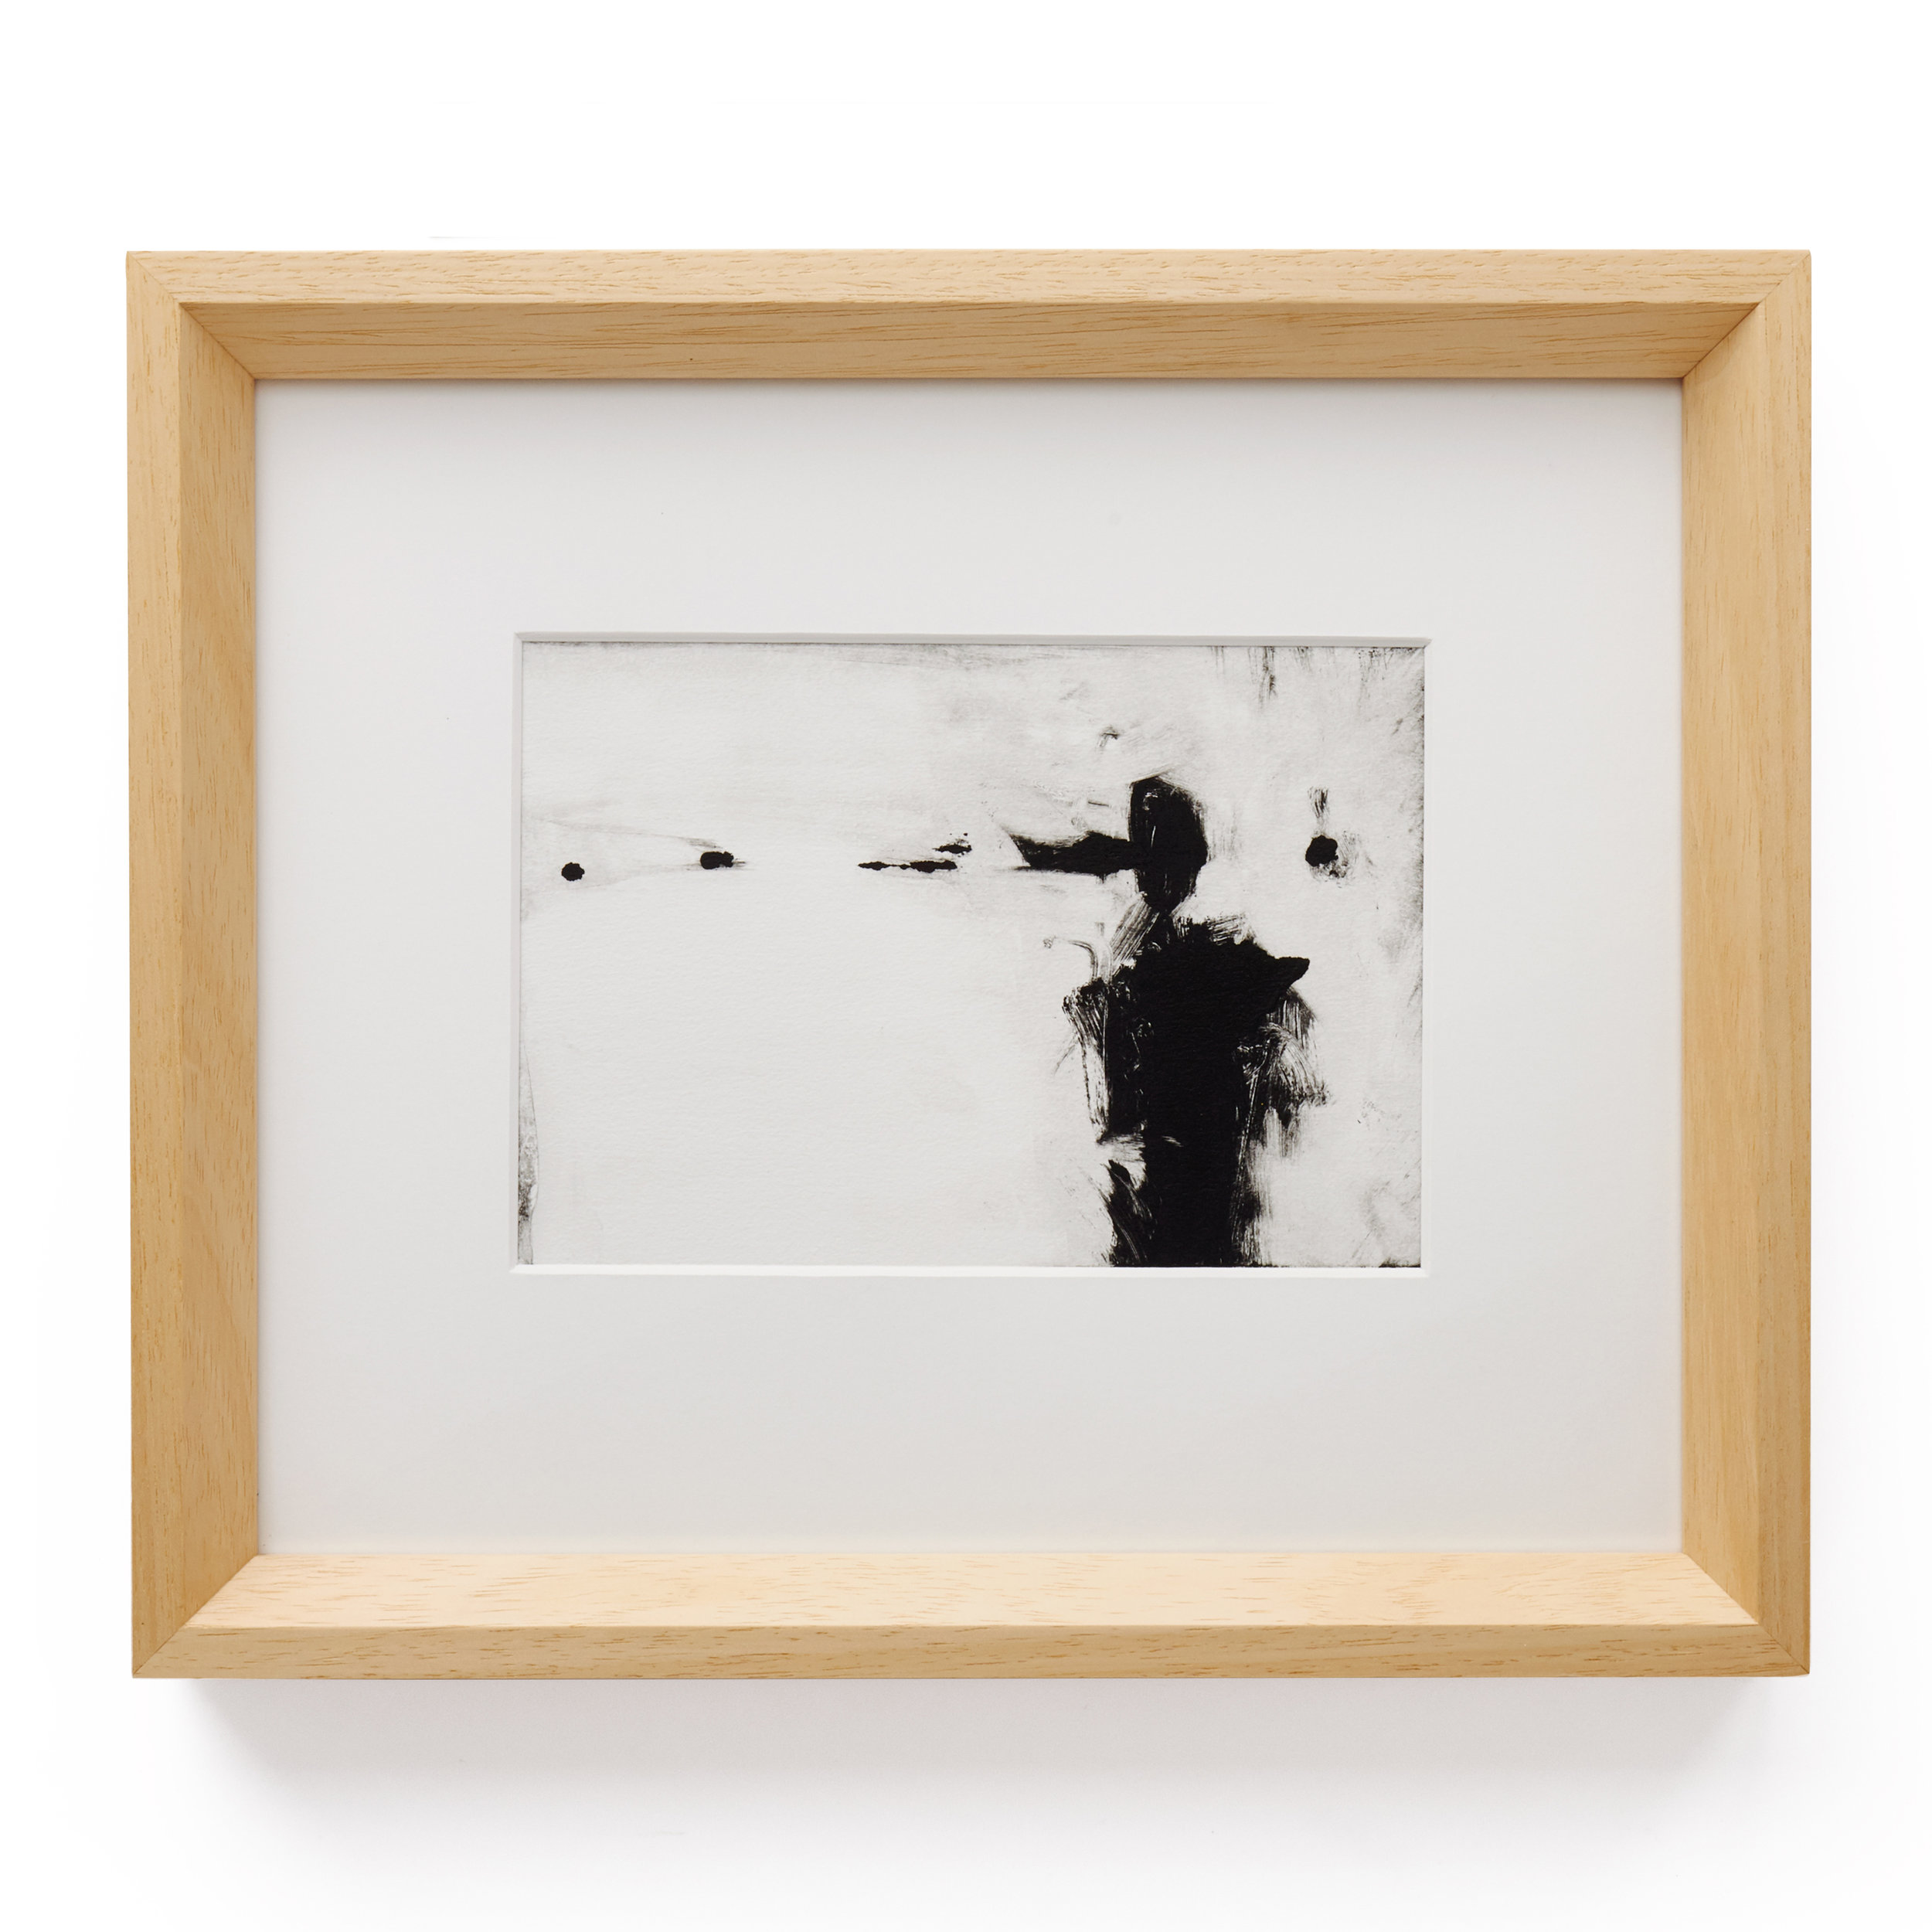 Monotype_Lonely_Figure_Approching_Triptych_03.jpg